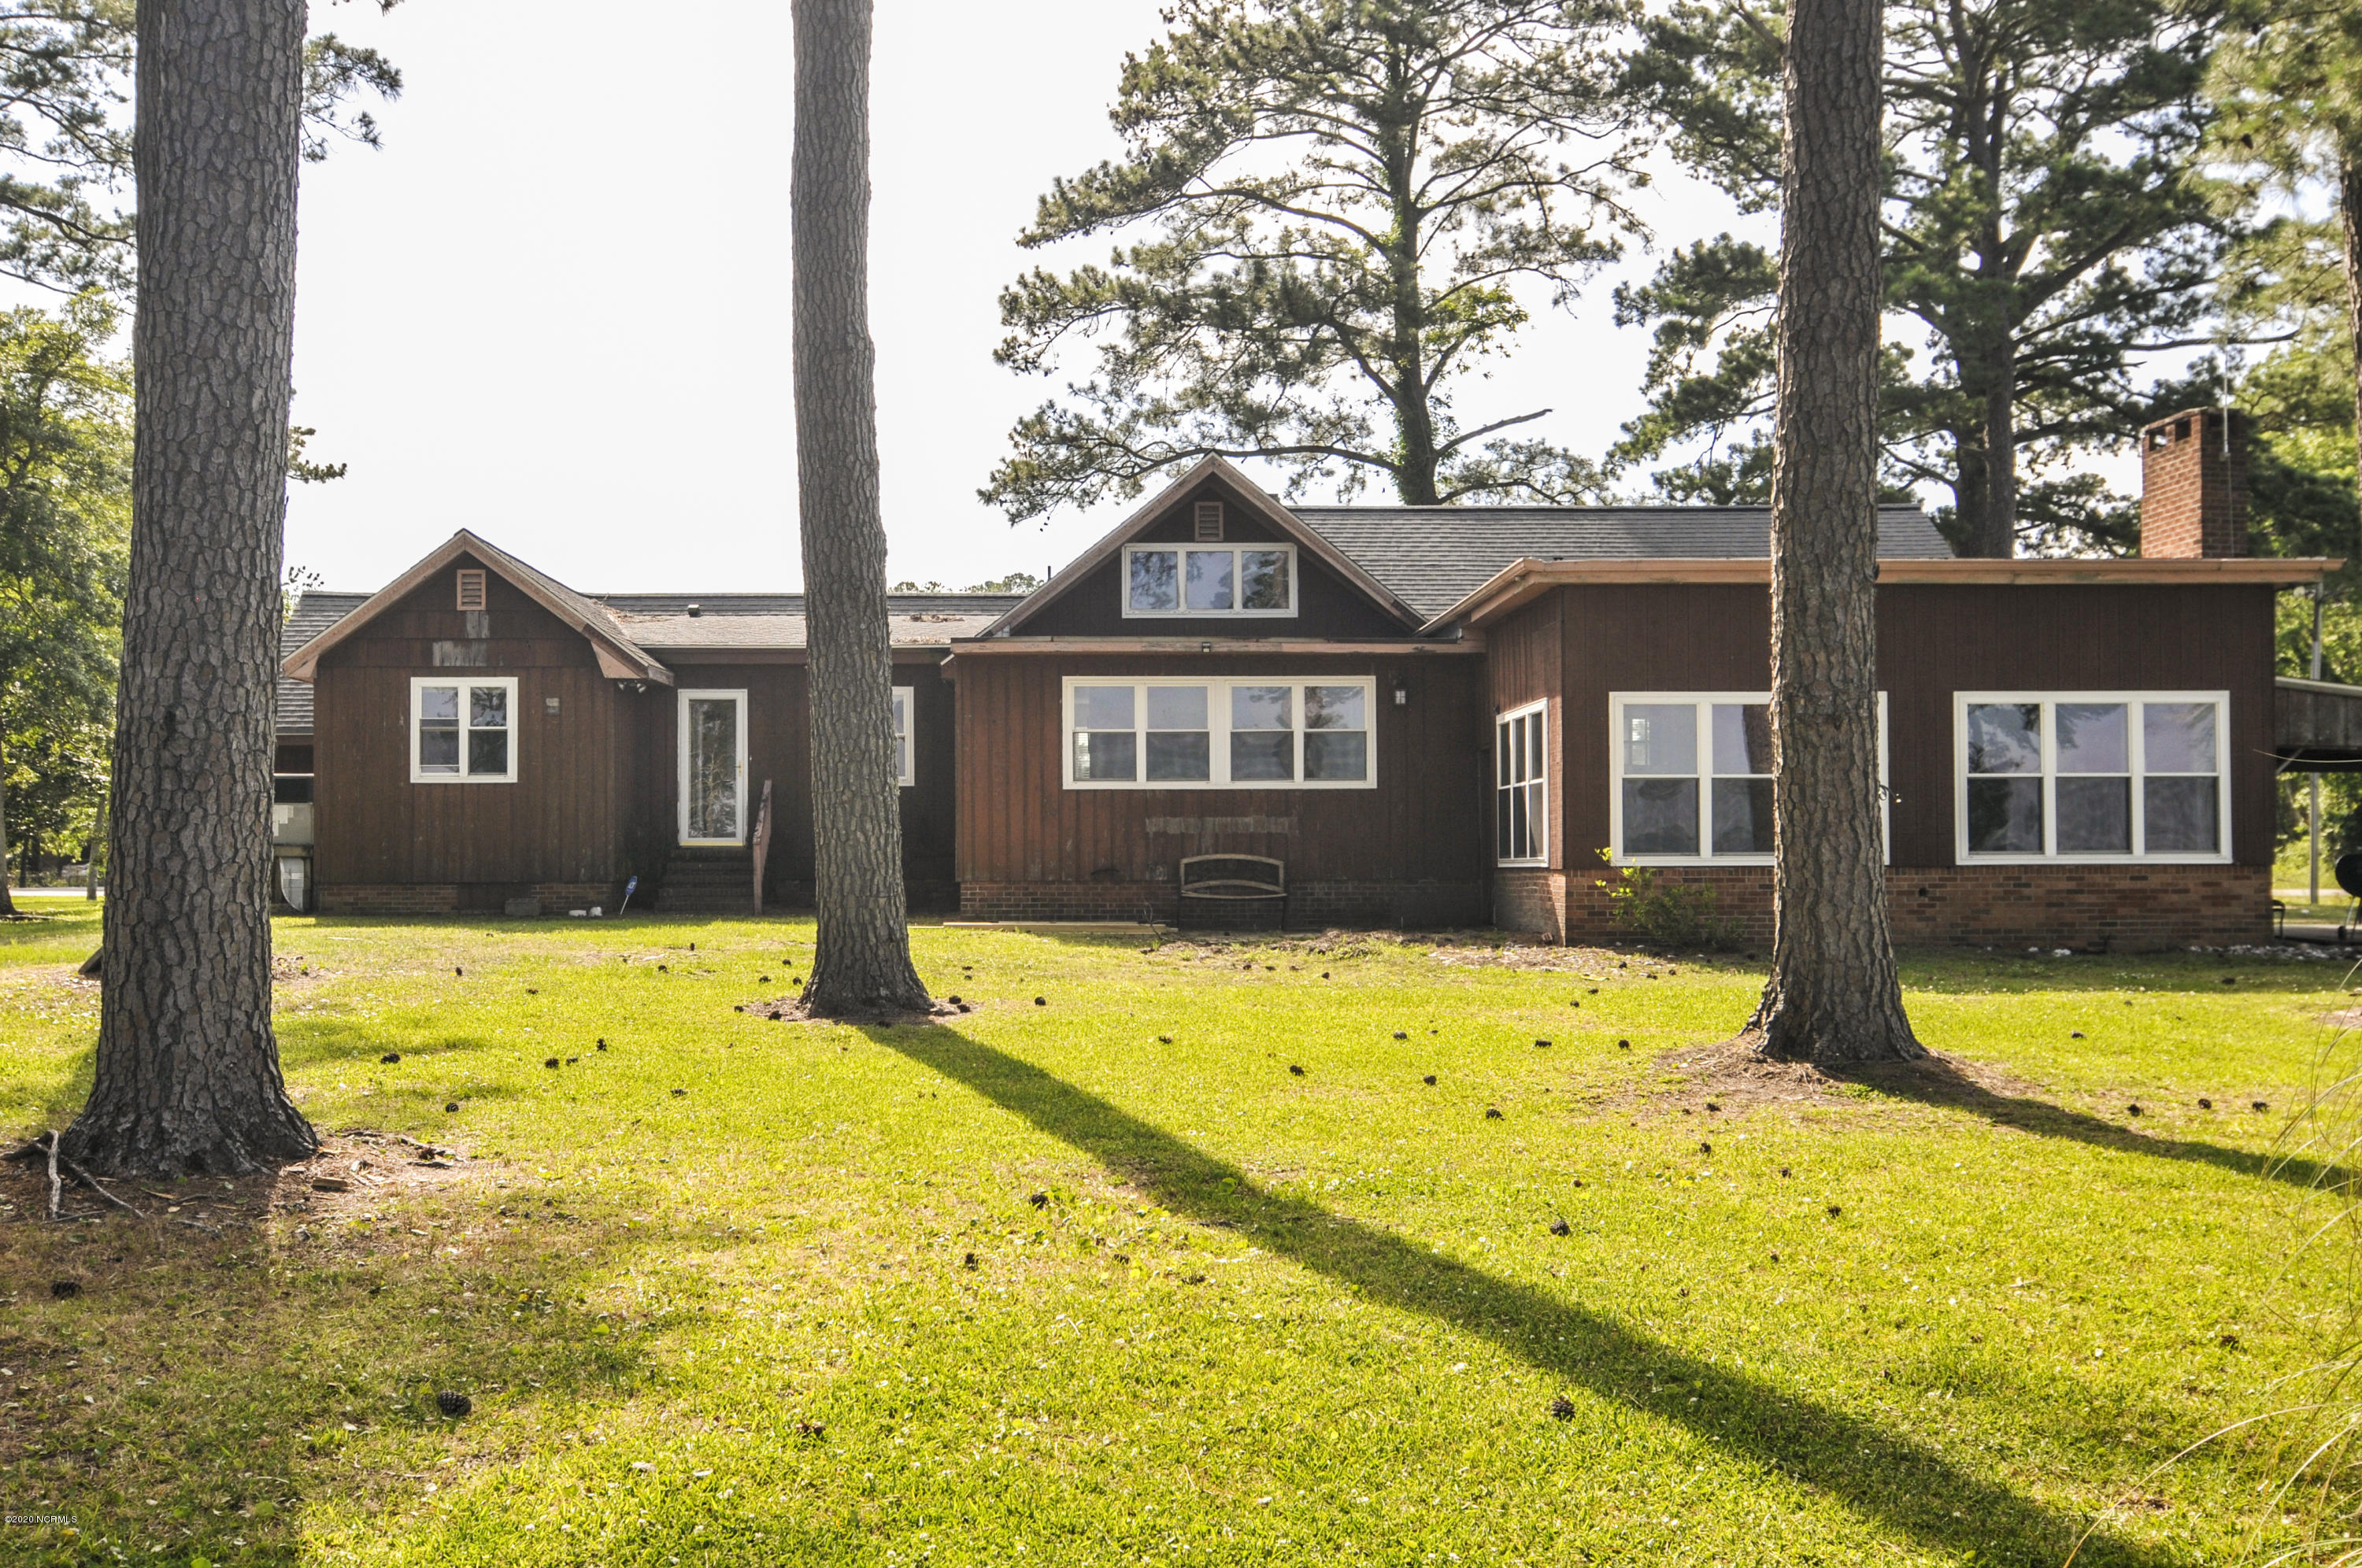 812 Hubs Rec Road, Belhaven, North Carolina 27810, 5 Bedrooms Bedrooms, 12 Rooms Rooms,3 BathroomsBathrooms,Single family residence,For sale,Hubs Rec,100224866